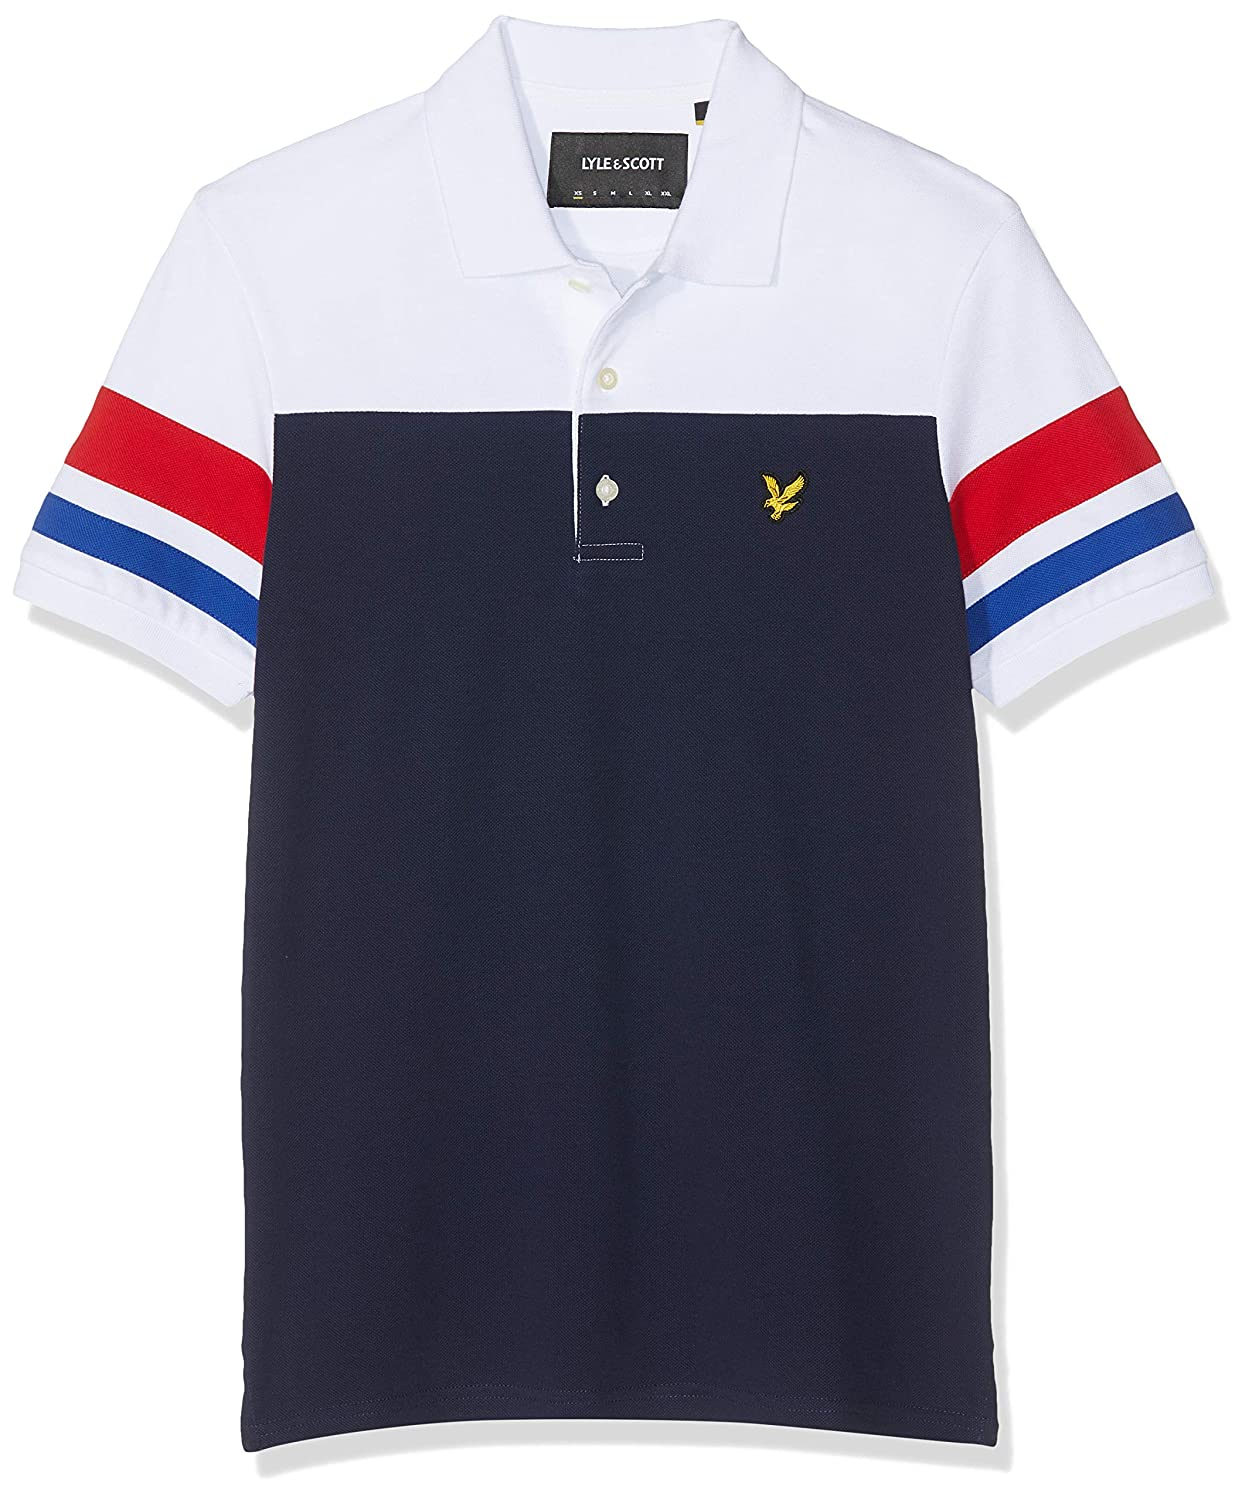 Lyle & Scott Contrast Band Polo Shirt Hombre: Amazon.es: Ropa y ...